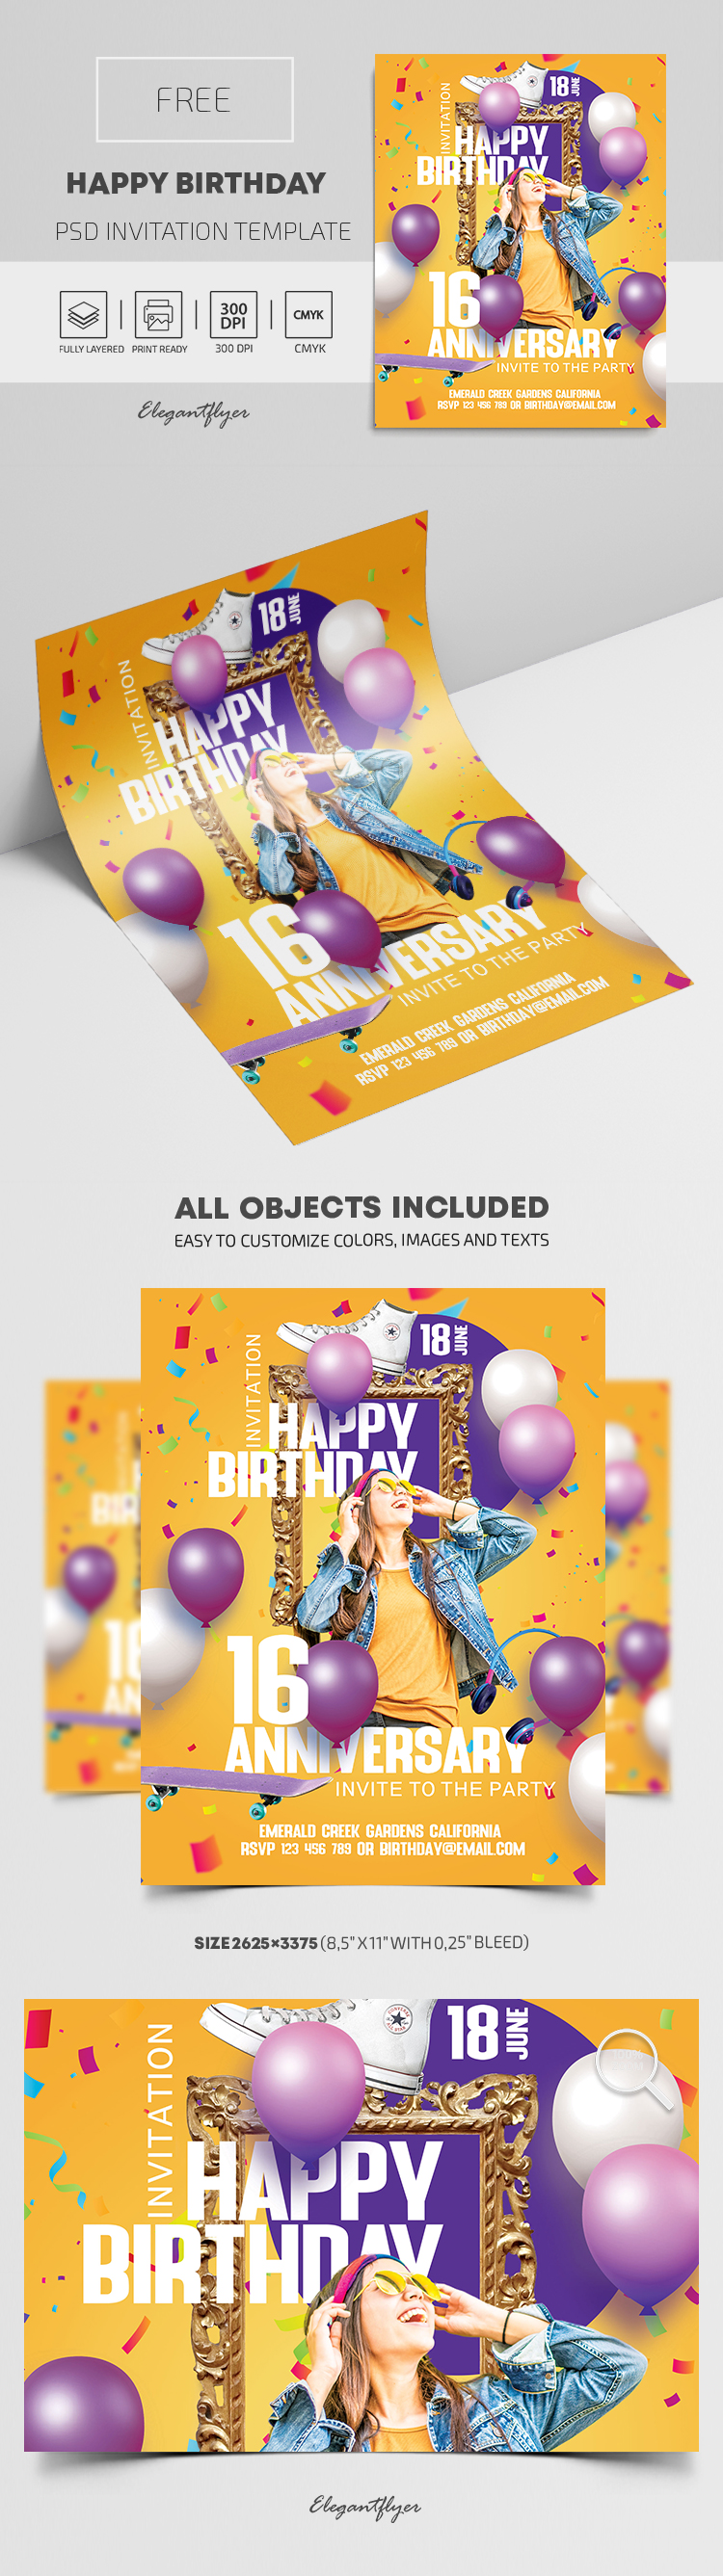 Happy Birthday – Free PSD Invitation Template